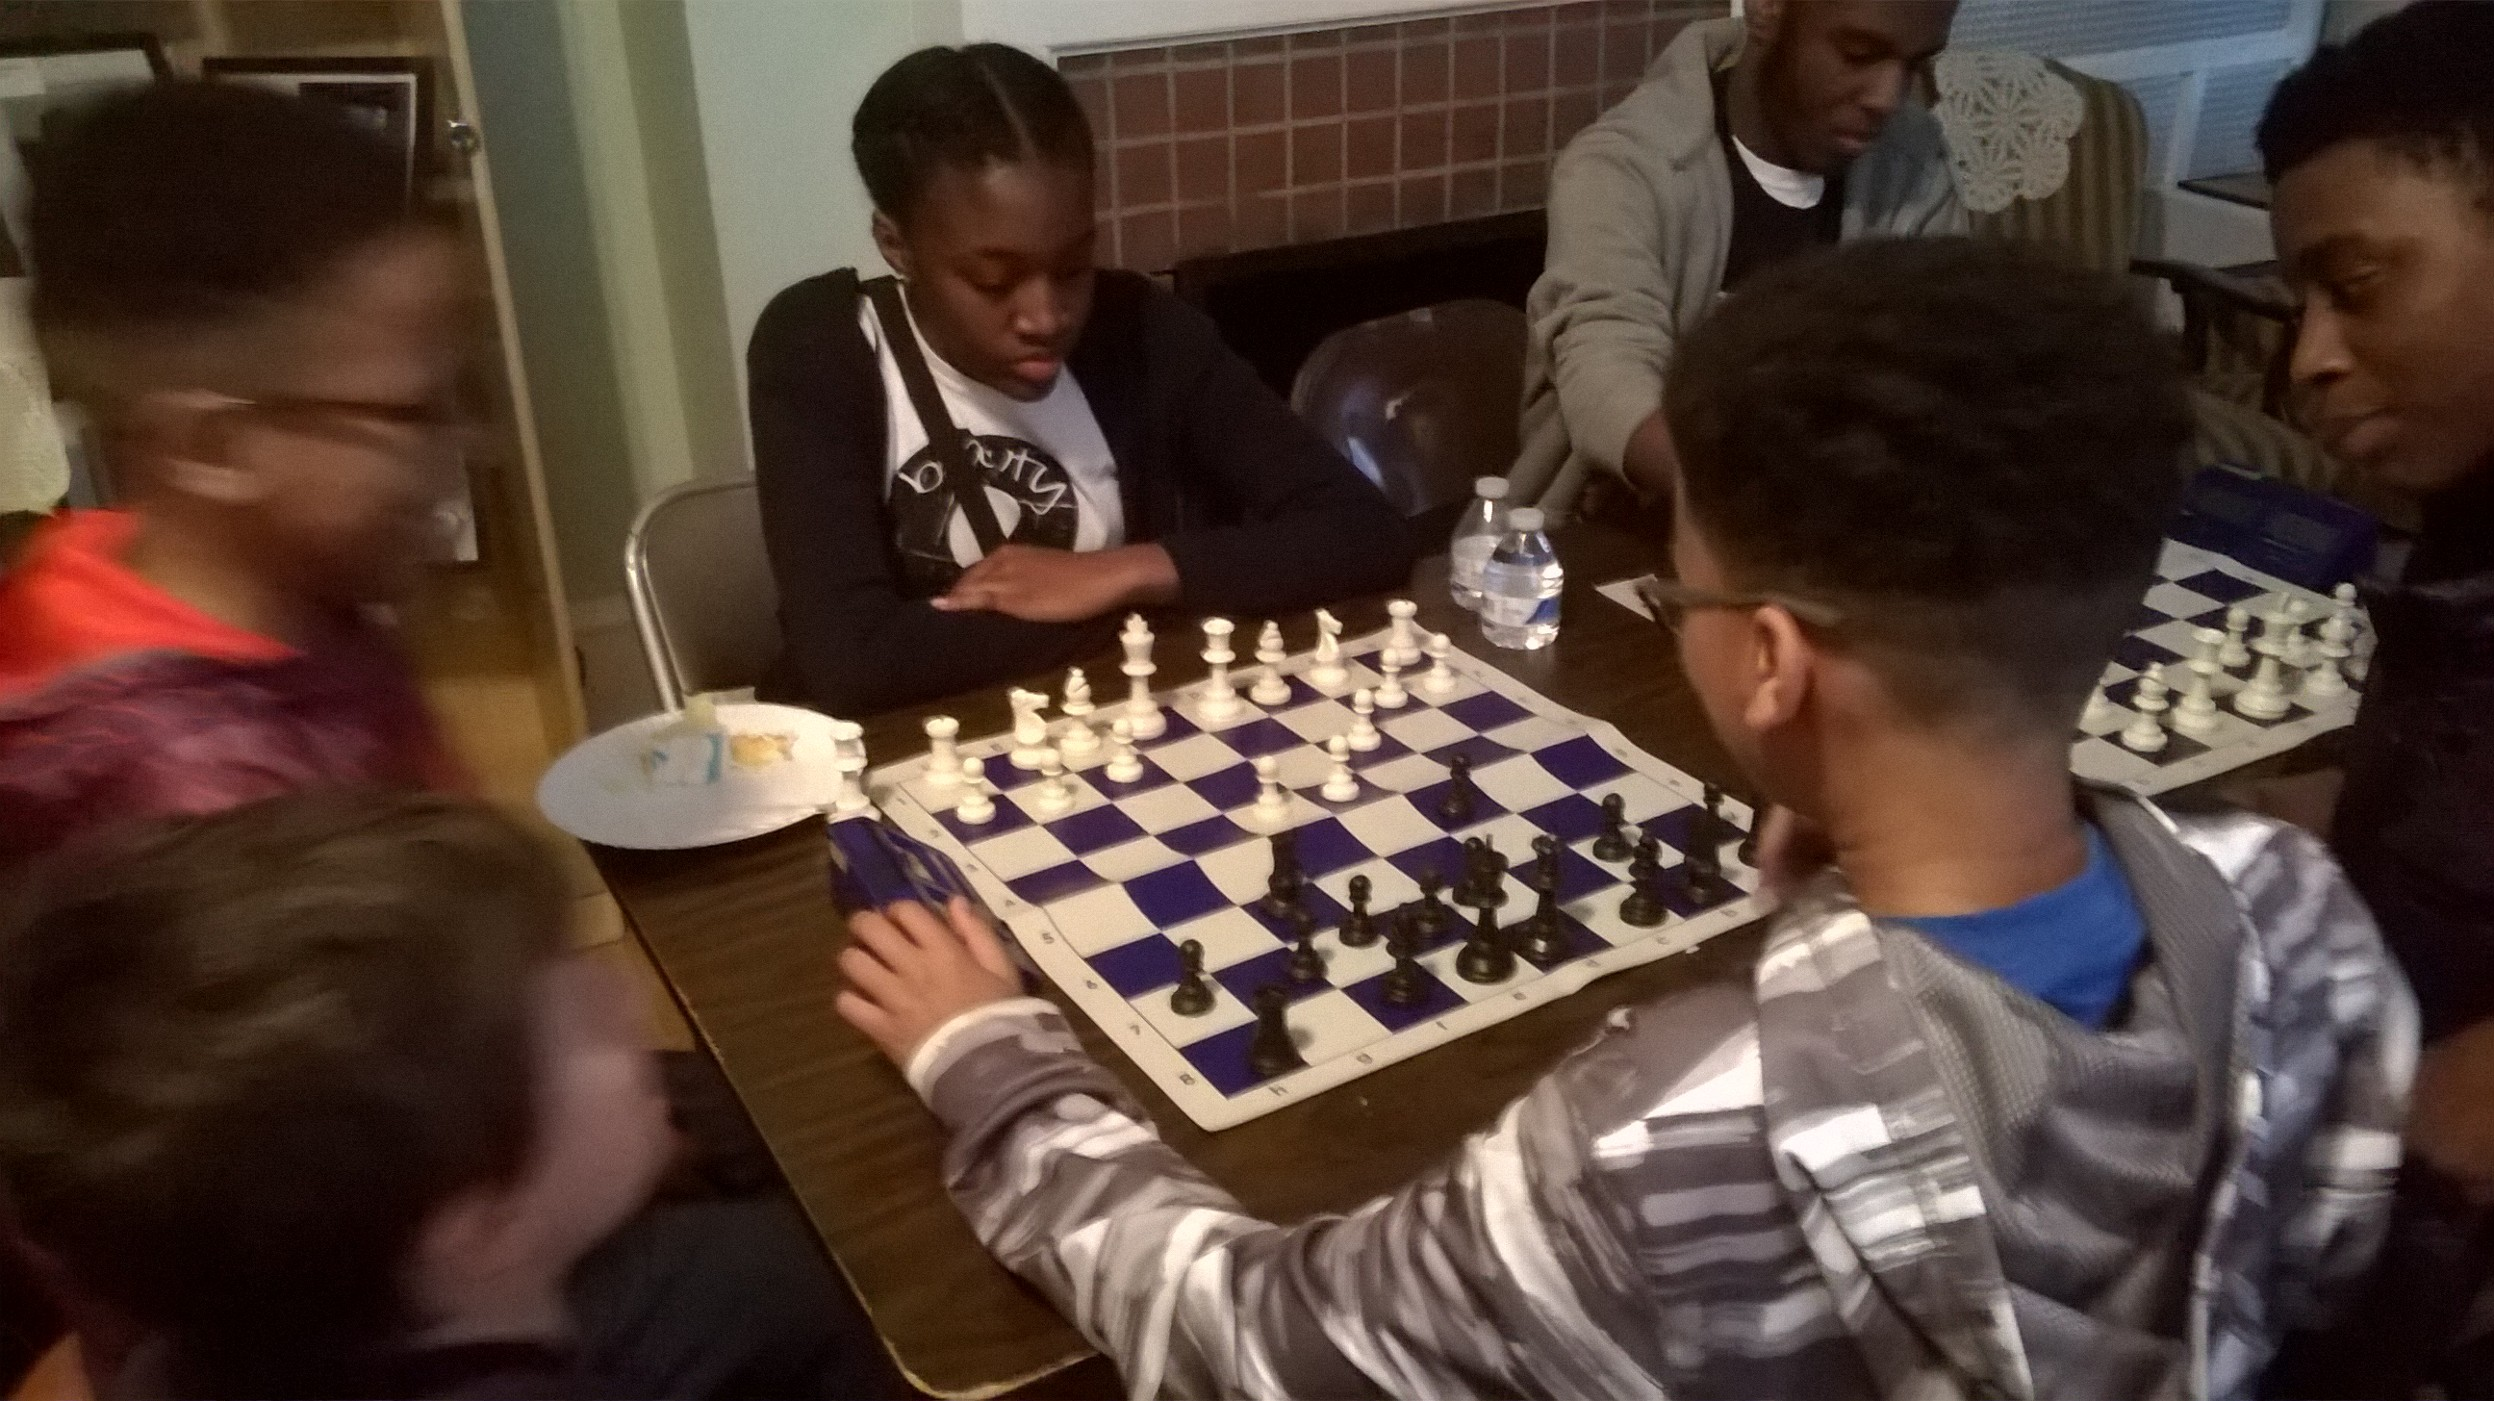 A Paul Robeson Chess Club member ponders a move.